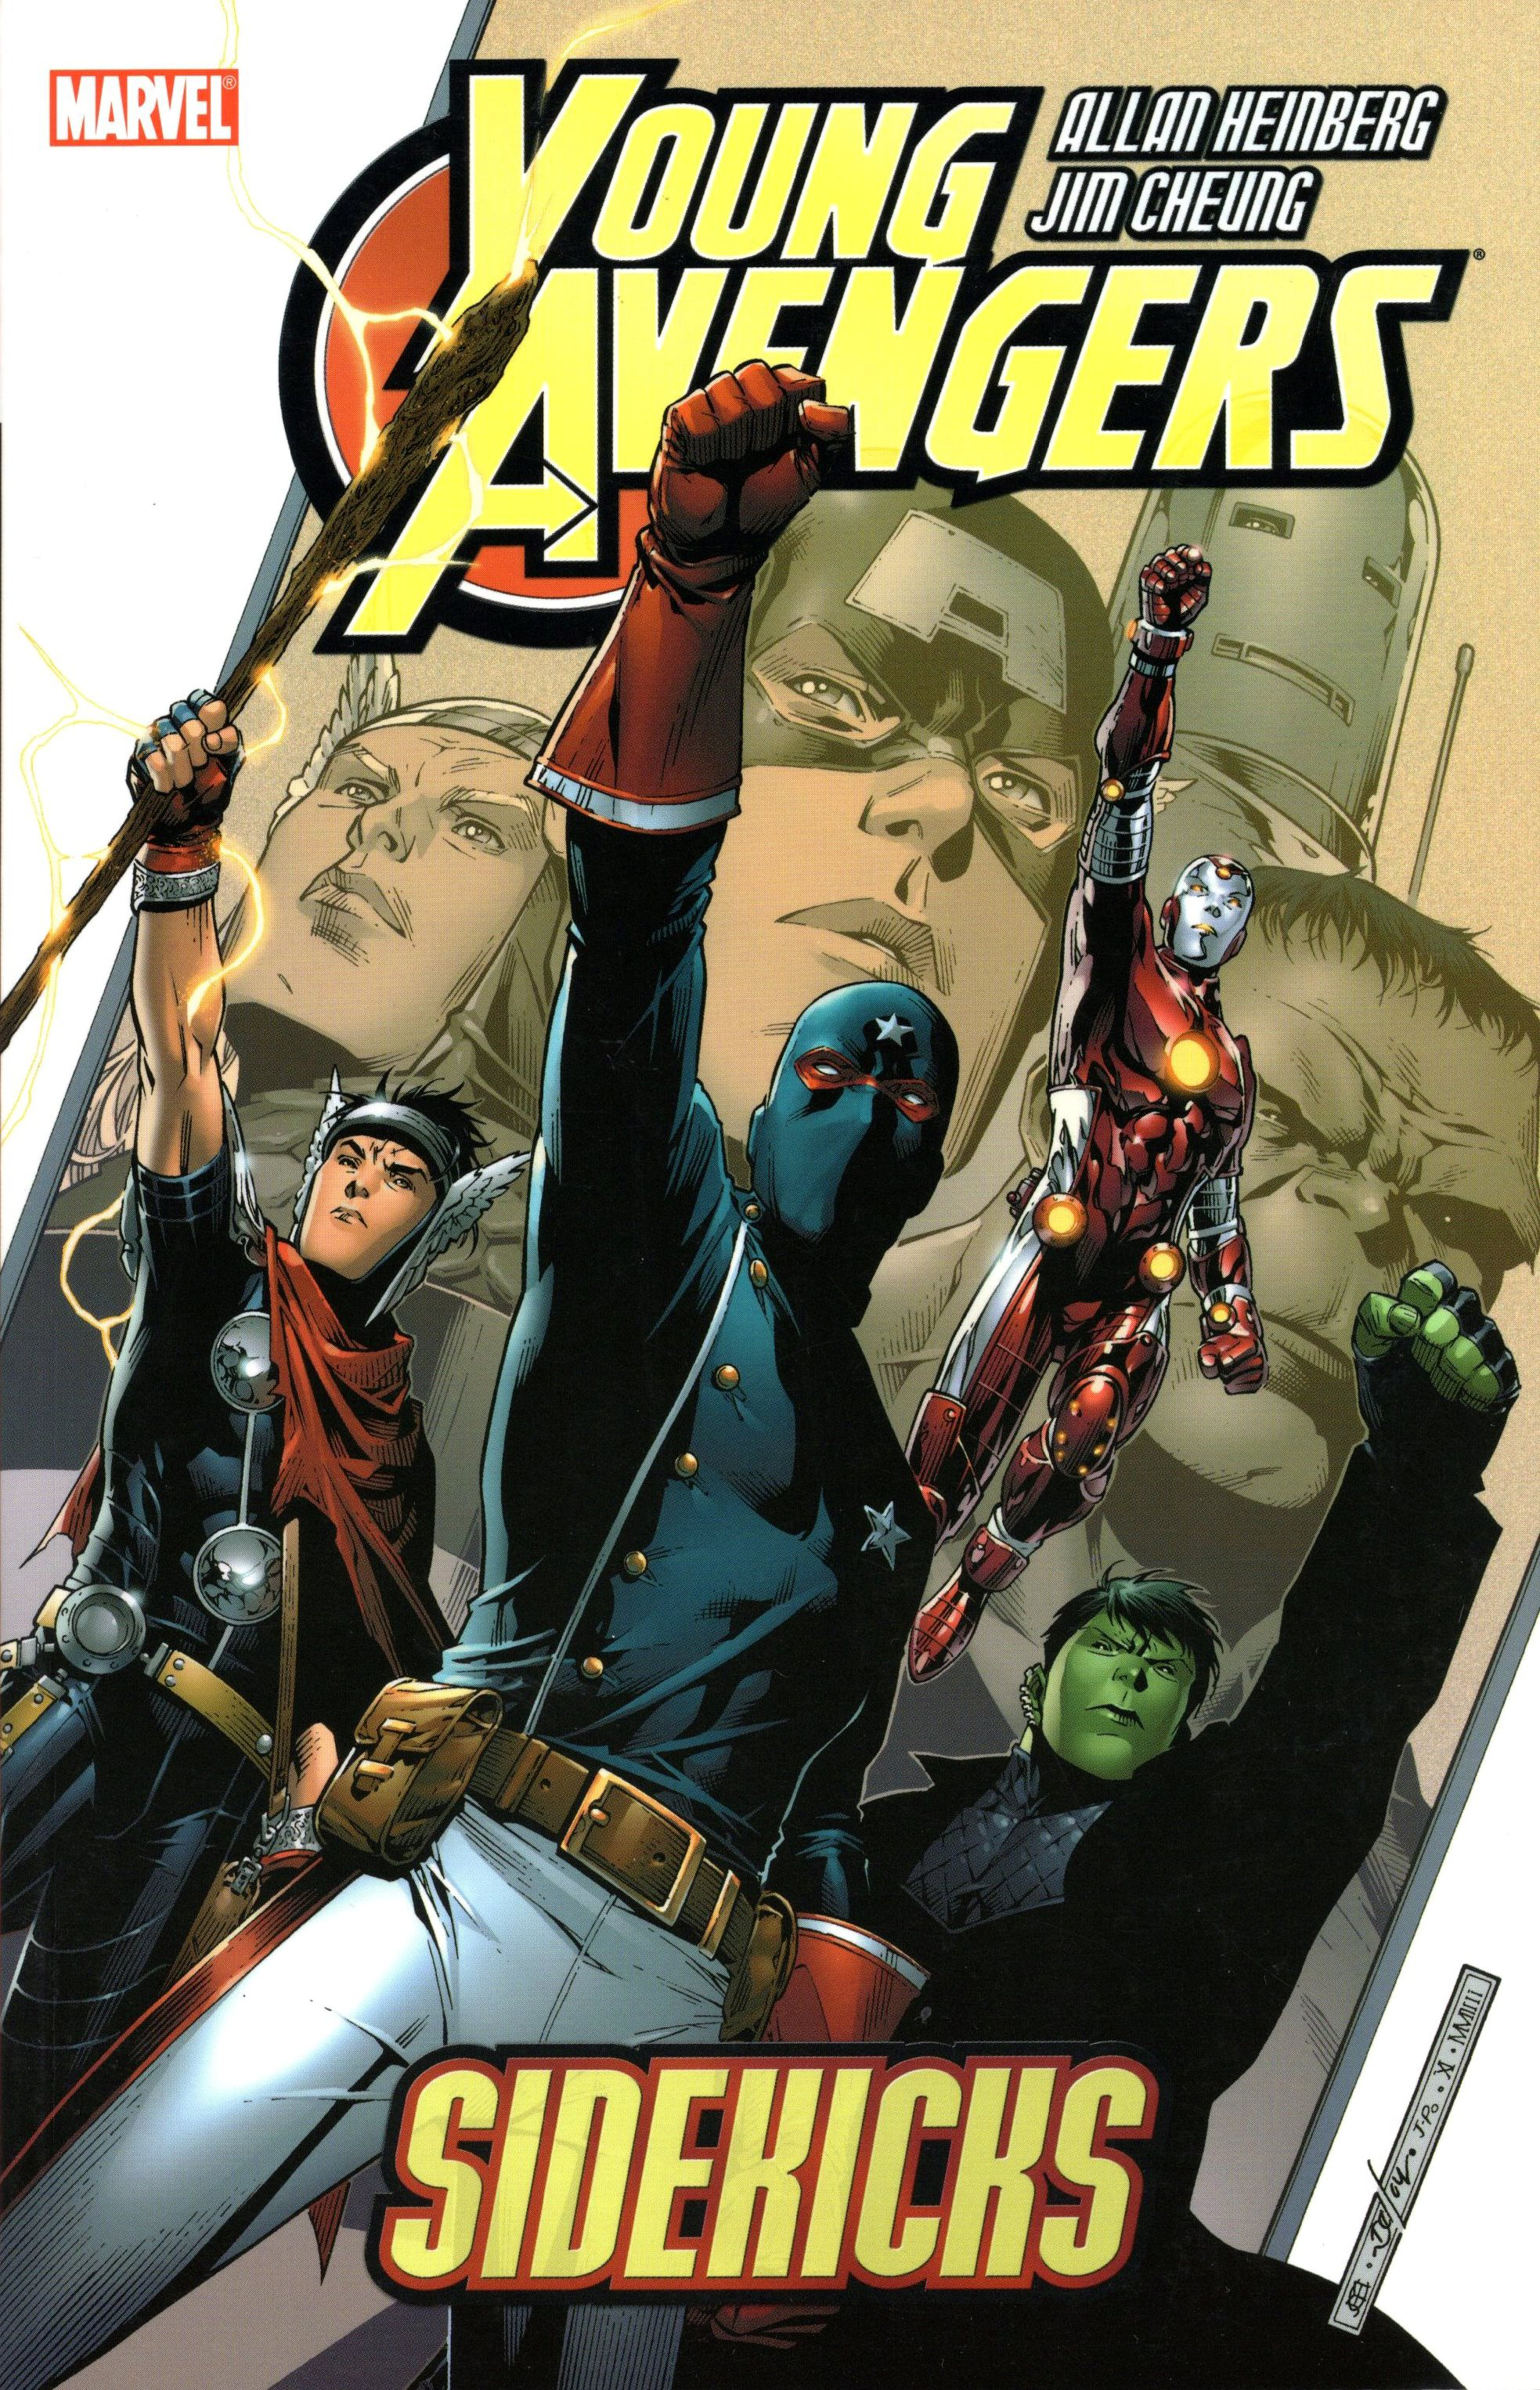 YOUNG AVENGERS TP VOL 01 SIDEKICKS